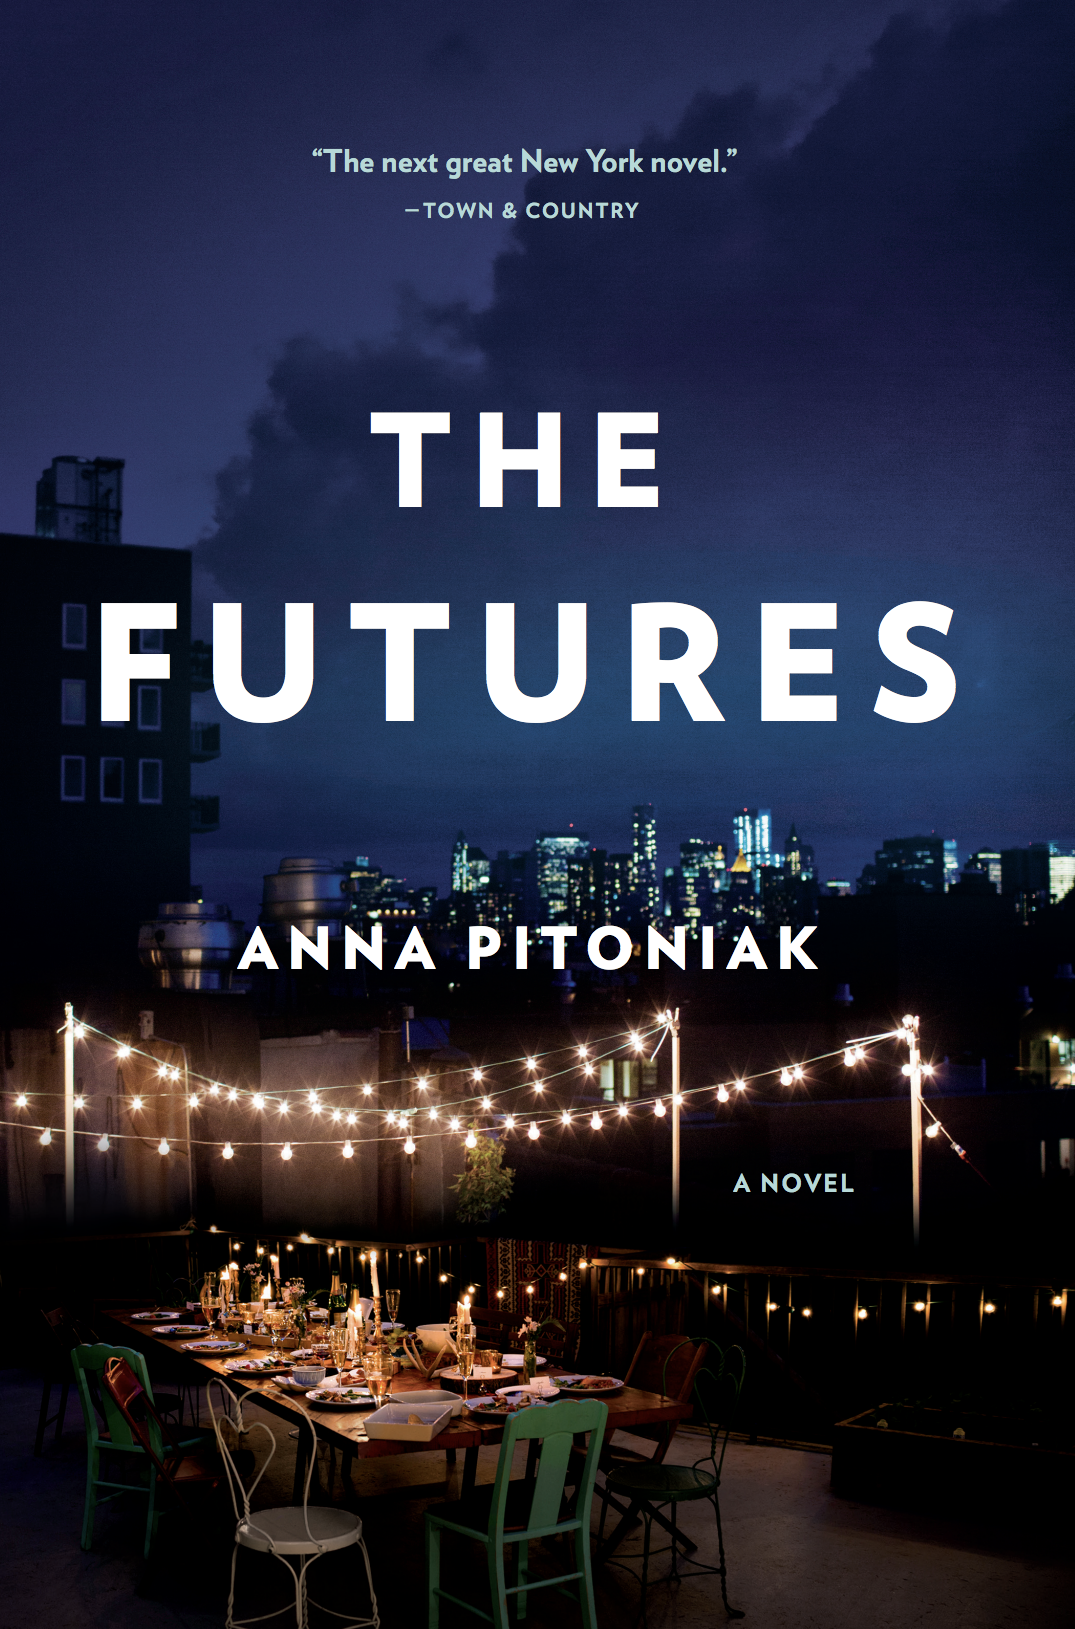 the futures anna pitoniak cover.png